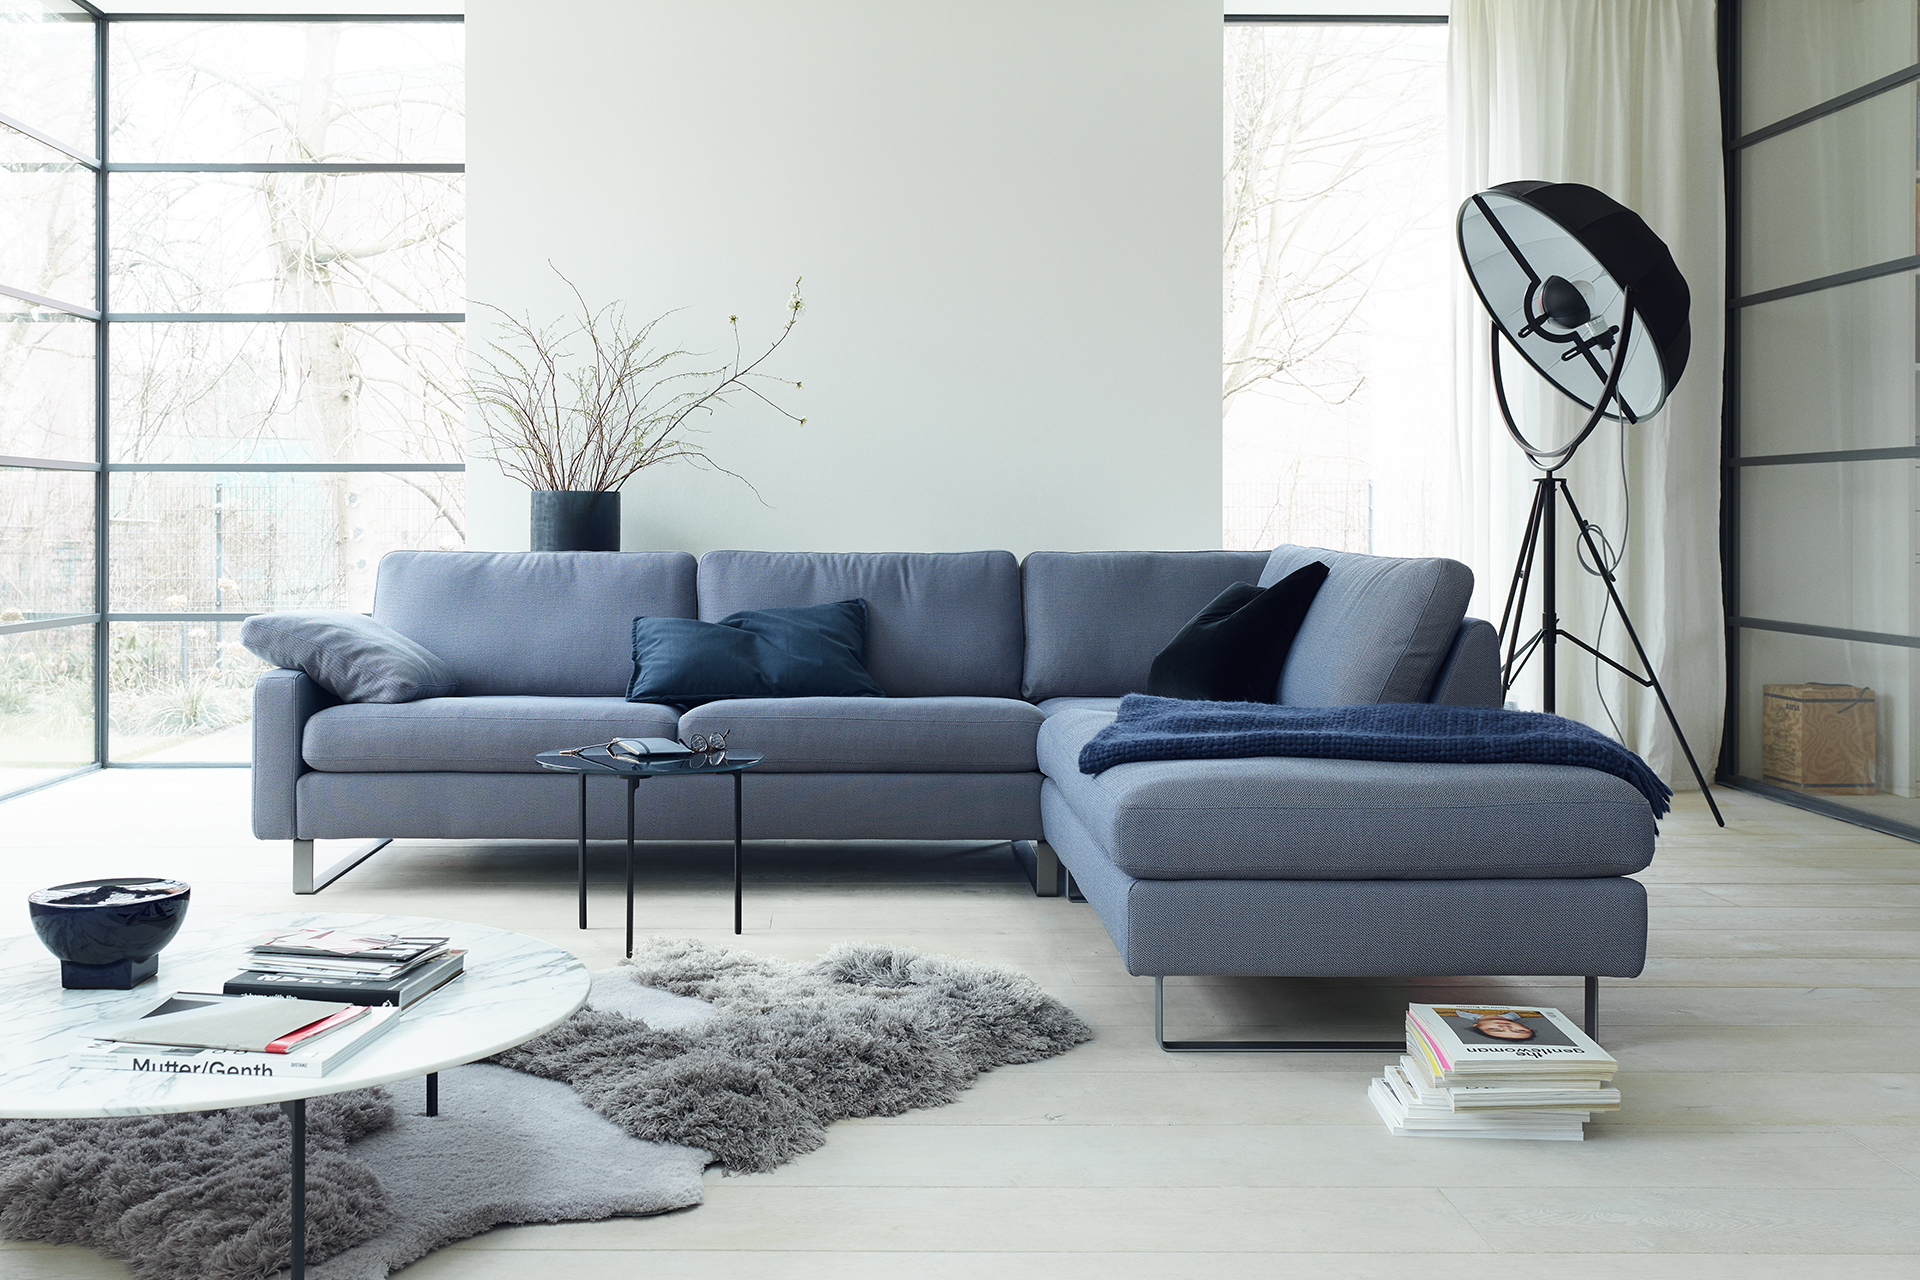 sofa selbst designen with sofa selbst designen simple neuheiten kollektion boconcept. Black Bedroom Furniture Sets. Home Design Ideas